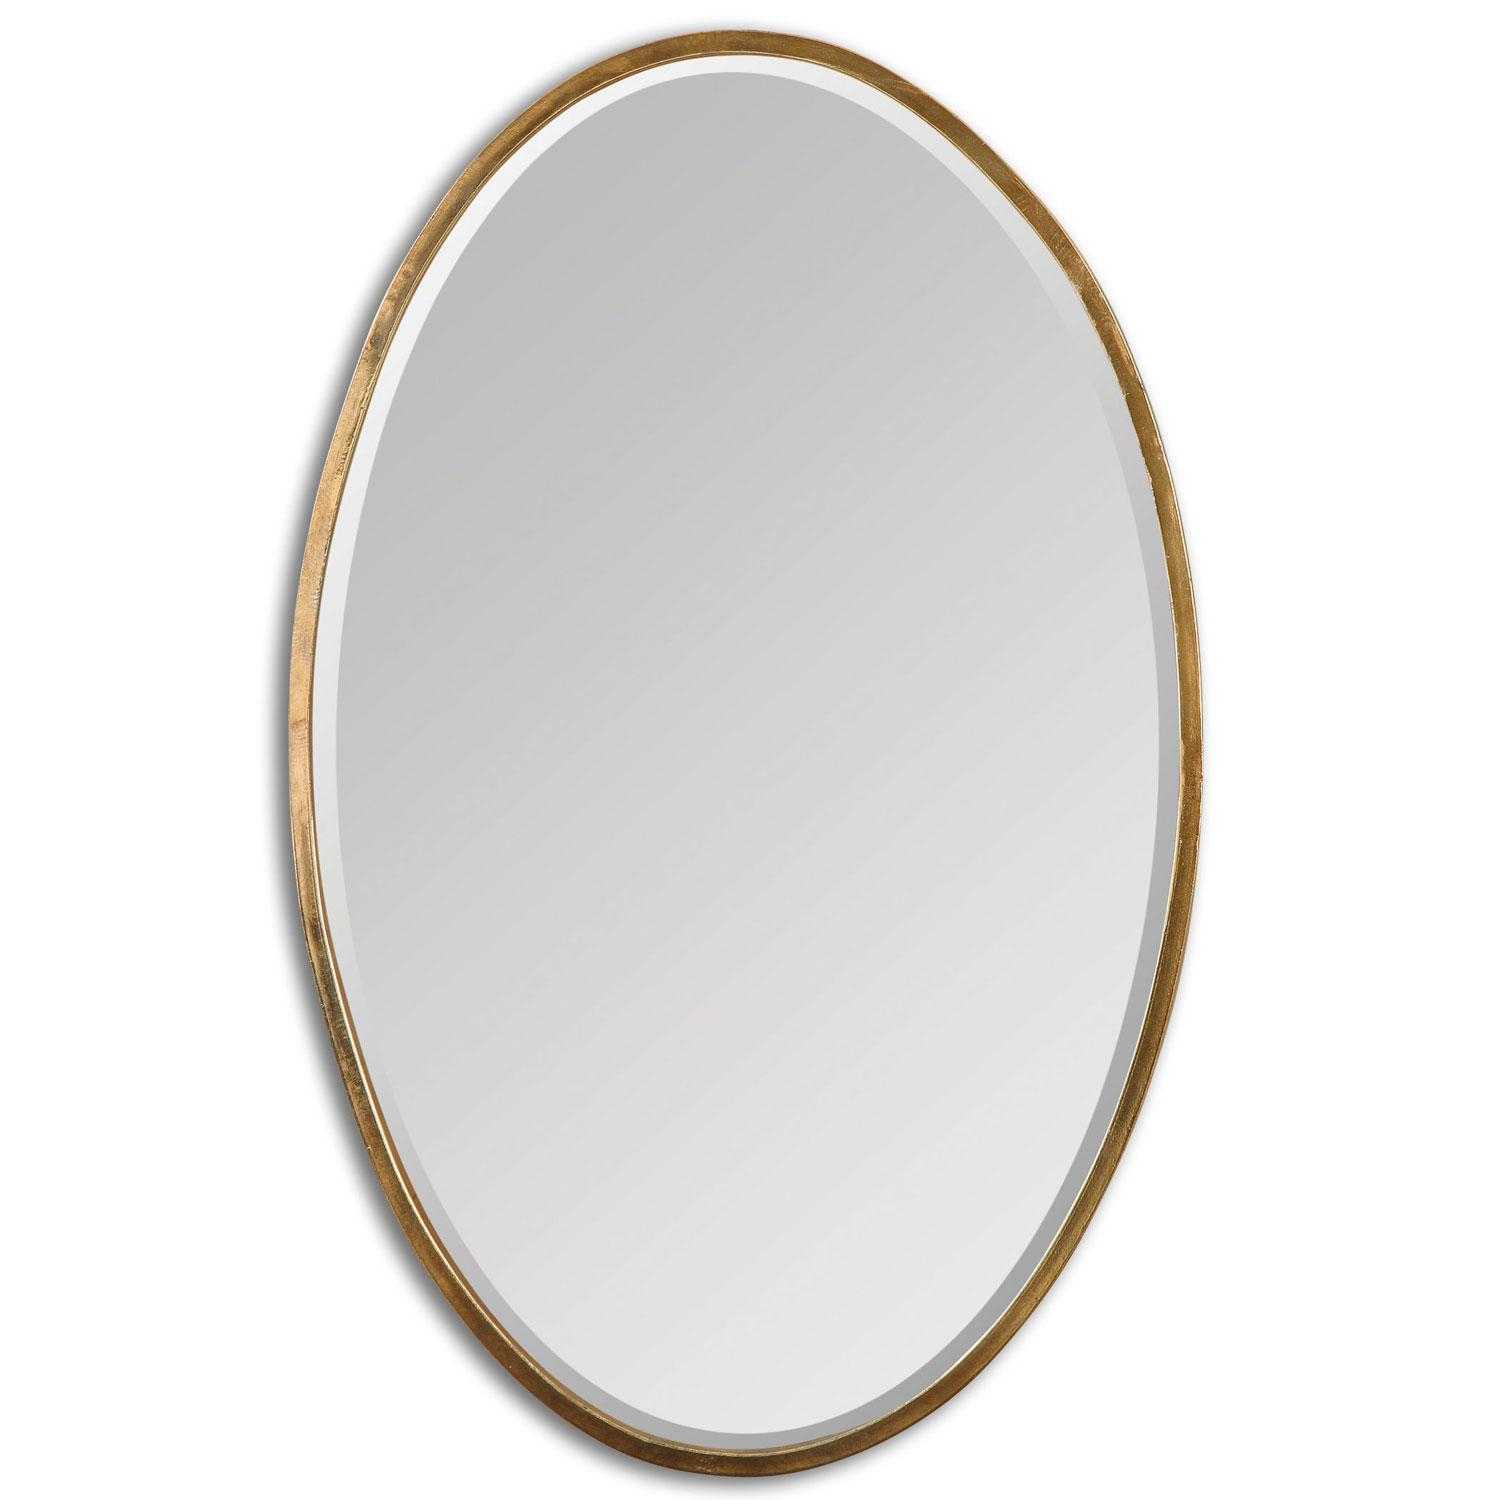 Gold Mirrors | Bellacor Within Antique Gold Mirrors For Sale (Image 11 of 20)